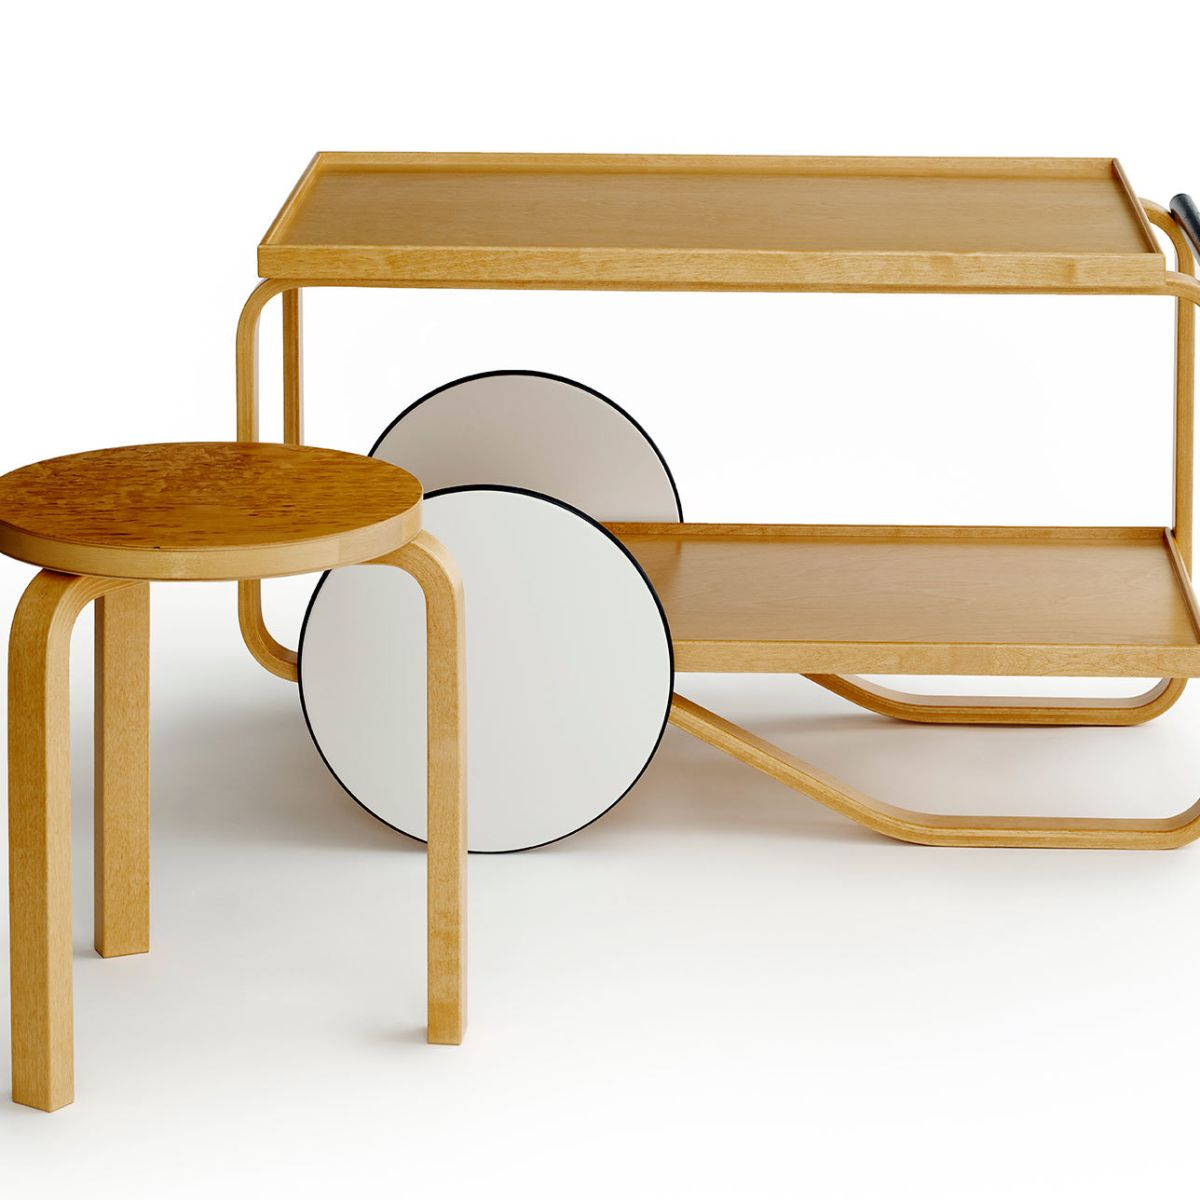 Tea-Trolley-901-Stool-60-honey-stained_mailer